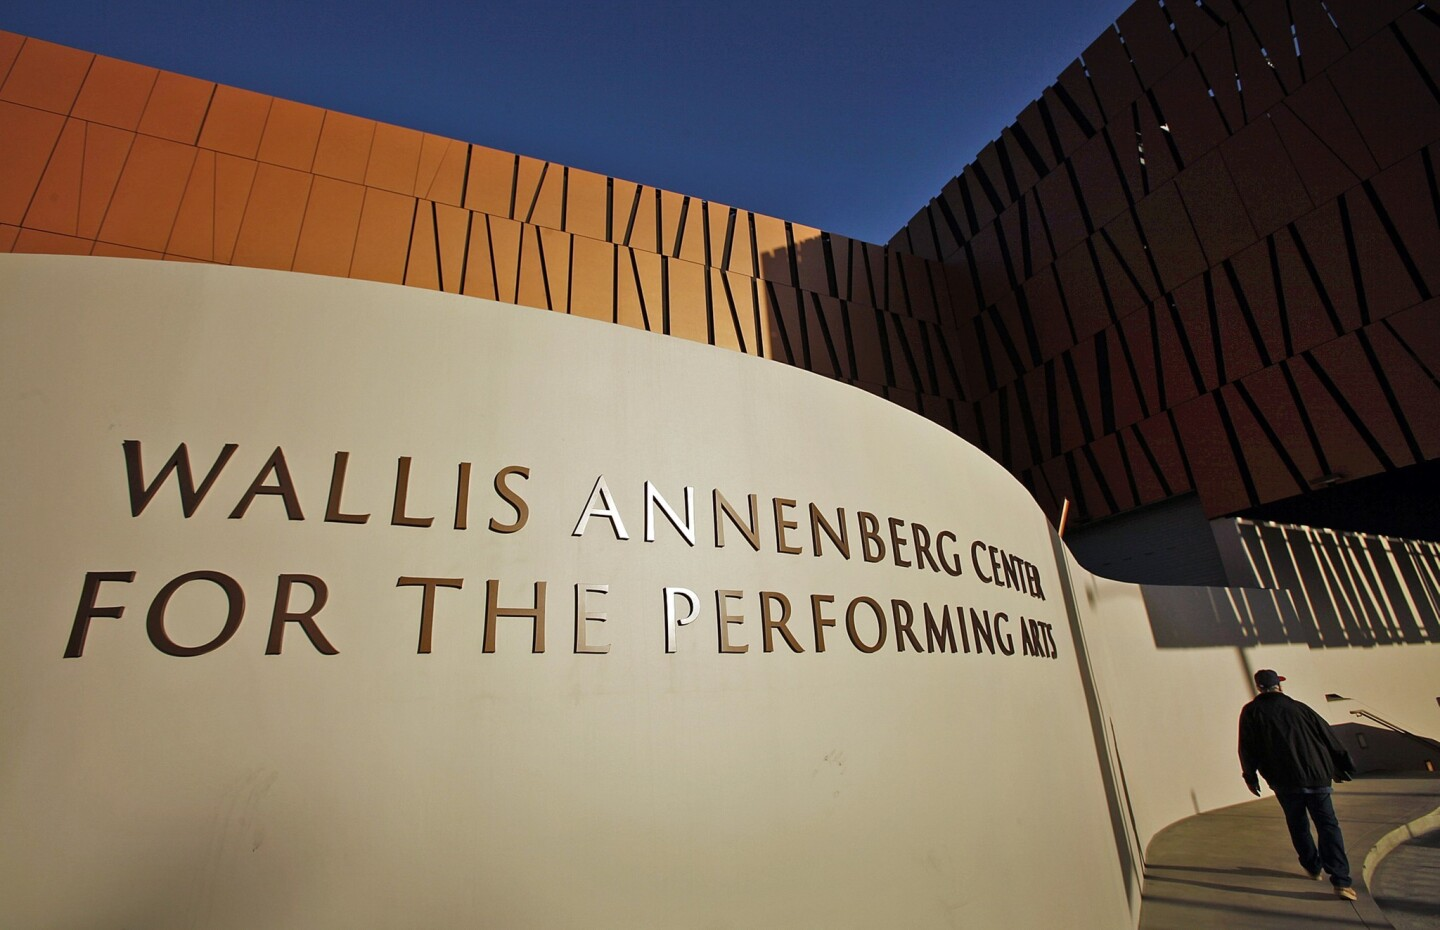 The Wallis Annenberg Center for the Performing Arts located on a 2.5-acre site at the intersection of Santa Monica Boulevard and Canon Drive in Beverly Hills on October 30, 2013. The site includes the expanded 1934 Beverly Hills Post Office and a new 500-seat Bram Goldsmith Theater designed by SPF architect Zoltan Pali.